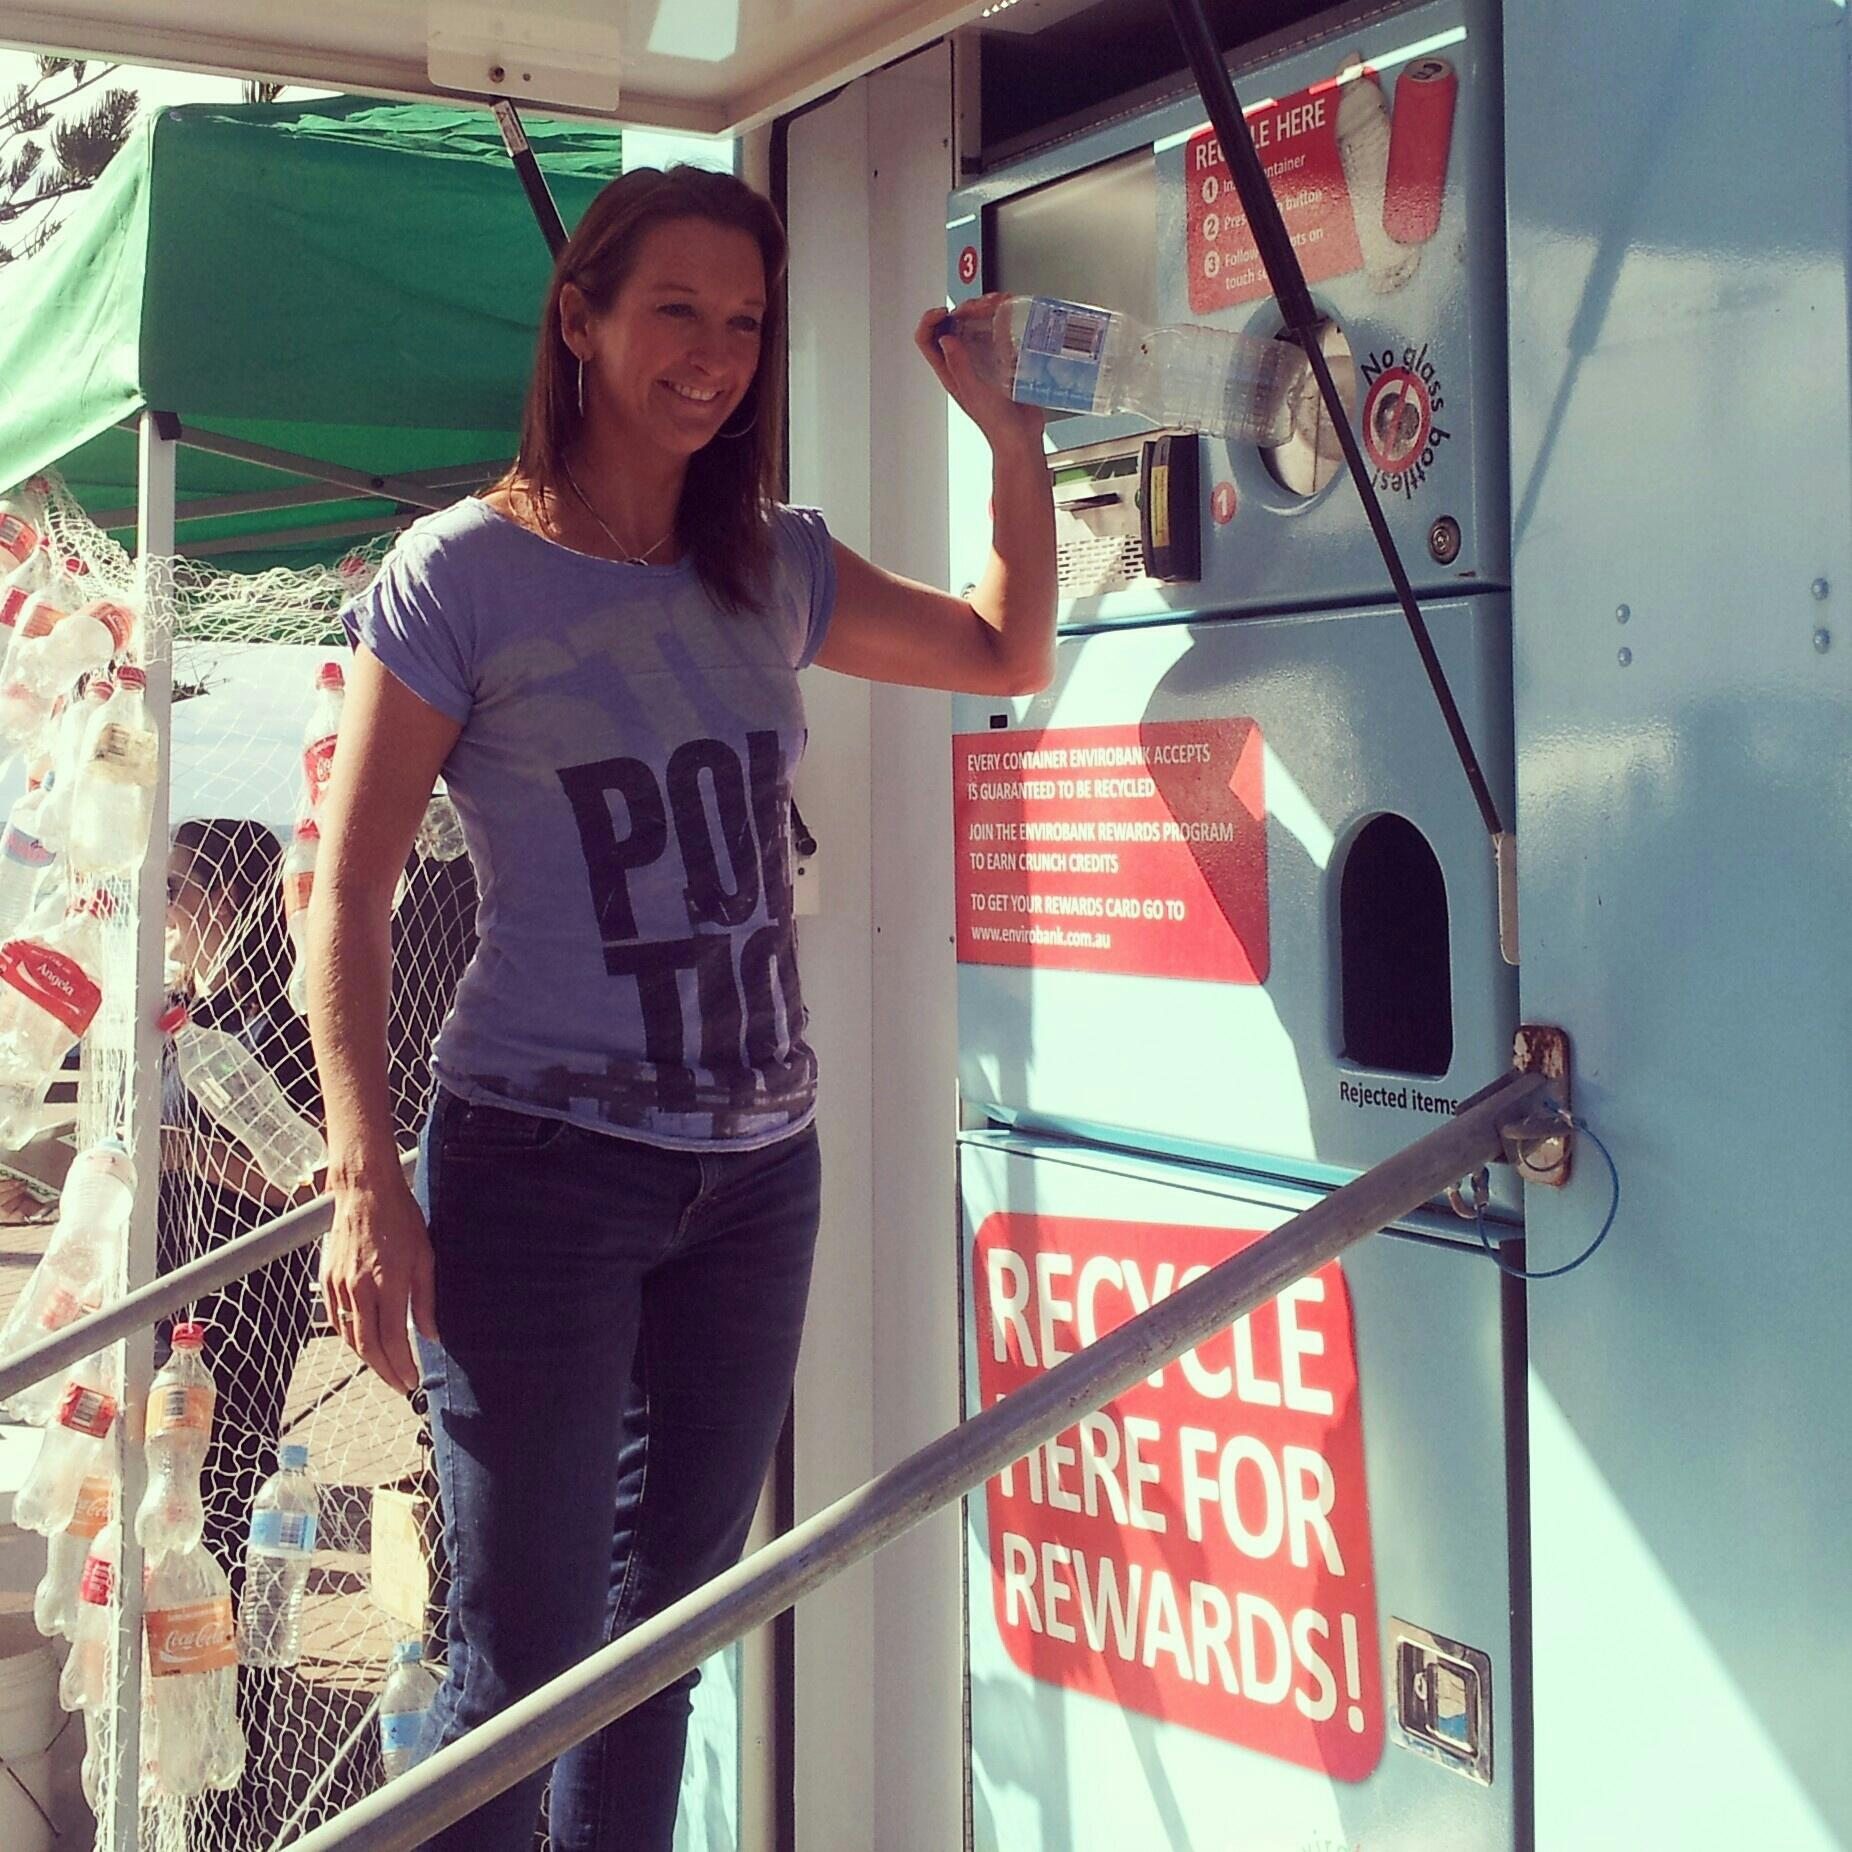 RT @GreenpeaceAustP: PIC: Reverse vending machine demo with surfing legend @LayneCBeachley  #cash4containers #recycling http://t.co/XyQPAl8…